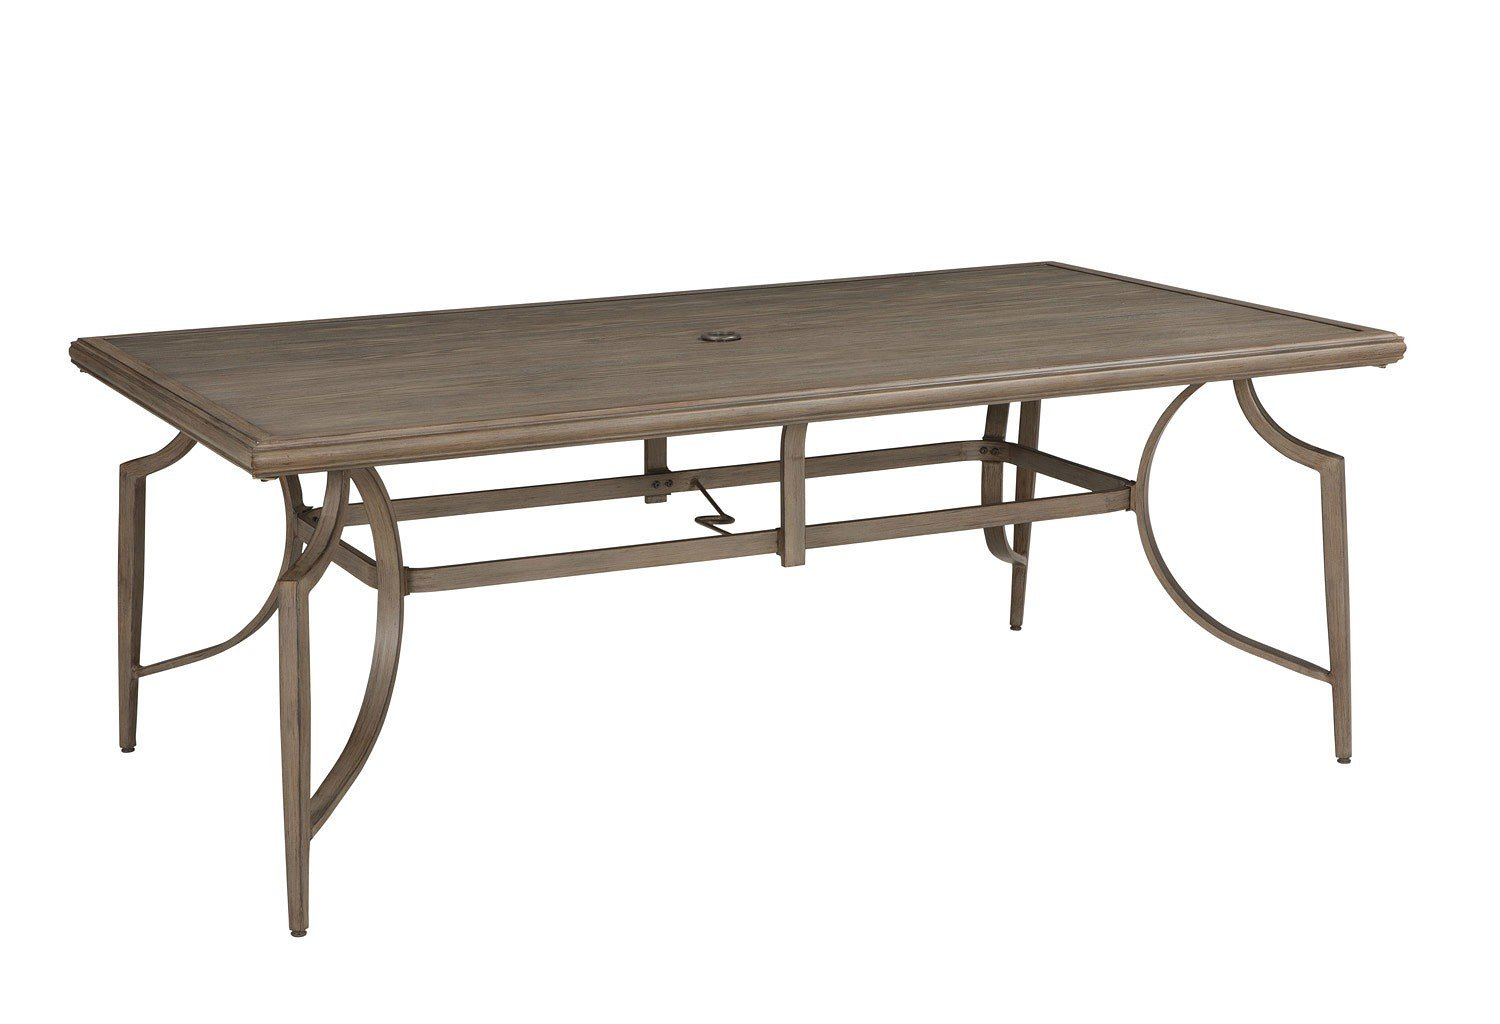 Partanna Outdoor Dining Table w/ Umbrella Option